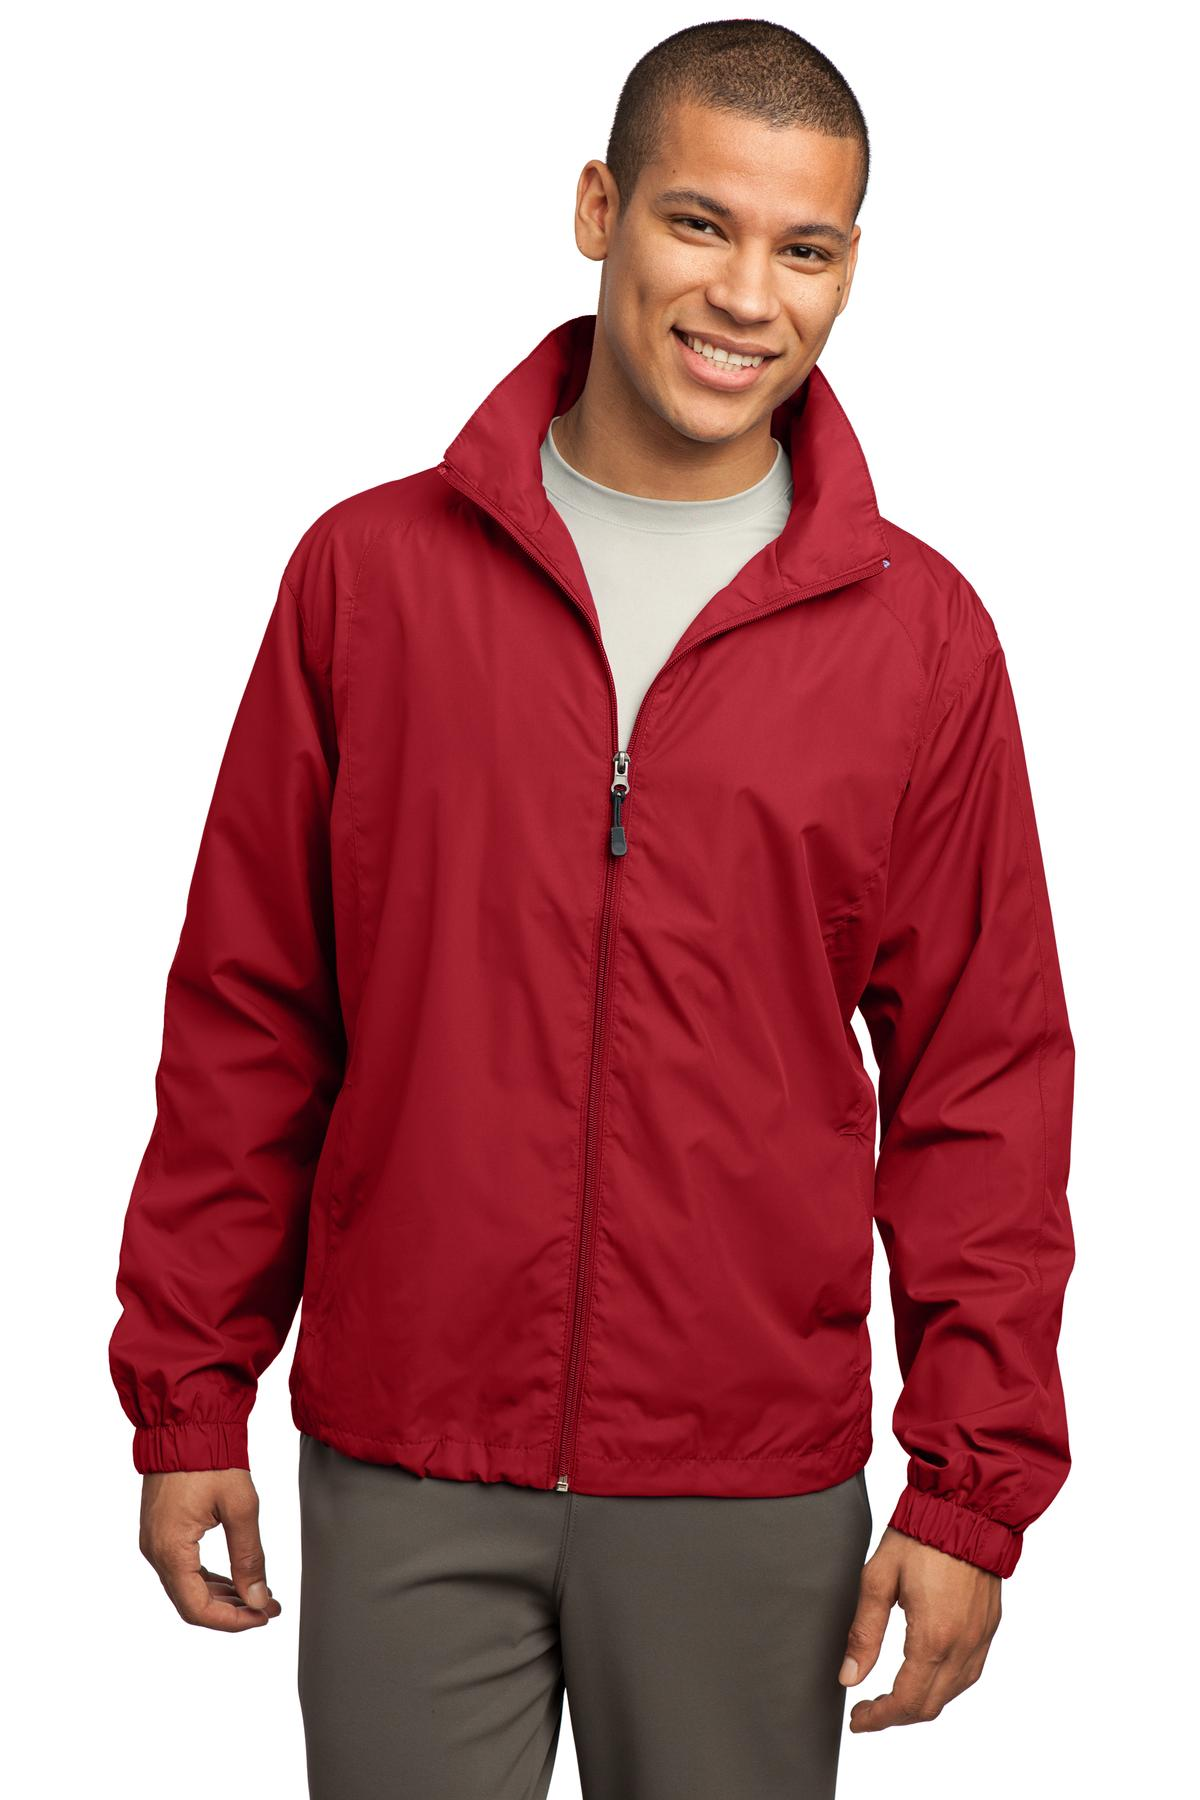 Sport-Tek ®  Full-Zip Wind Jacket. JST70 - True Red